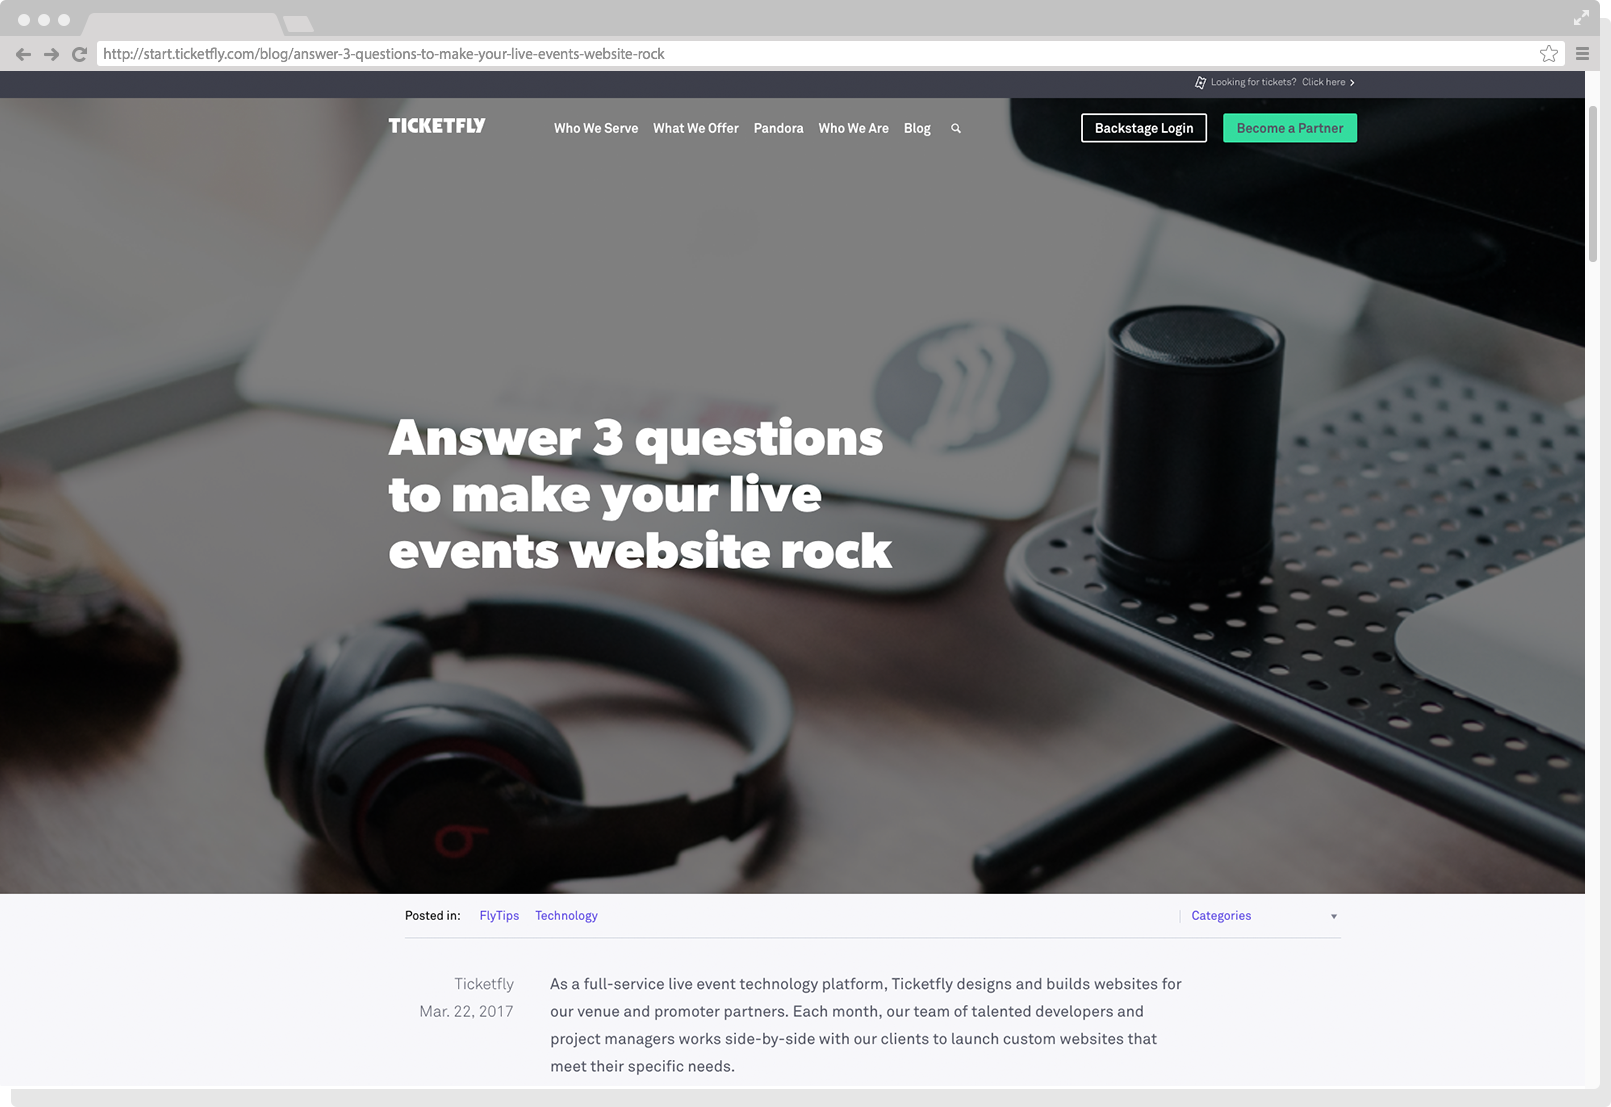 Schuler - Ticketfly - Press - Blog - March 17 - Answer 3 questions to make your live events website rock